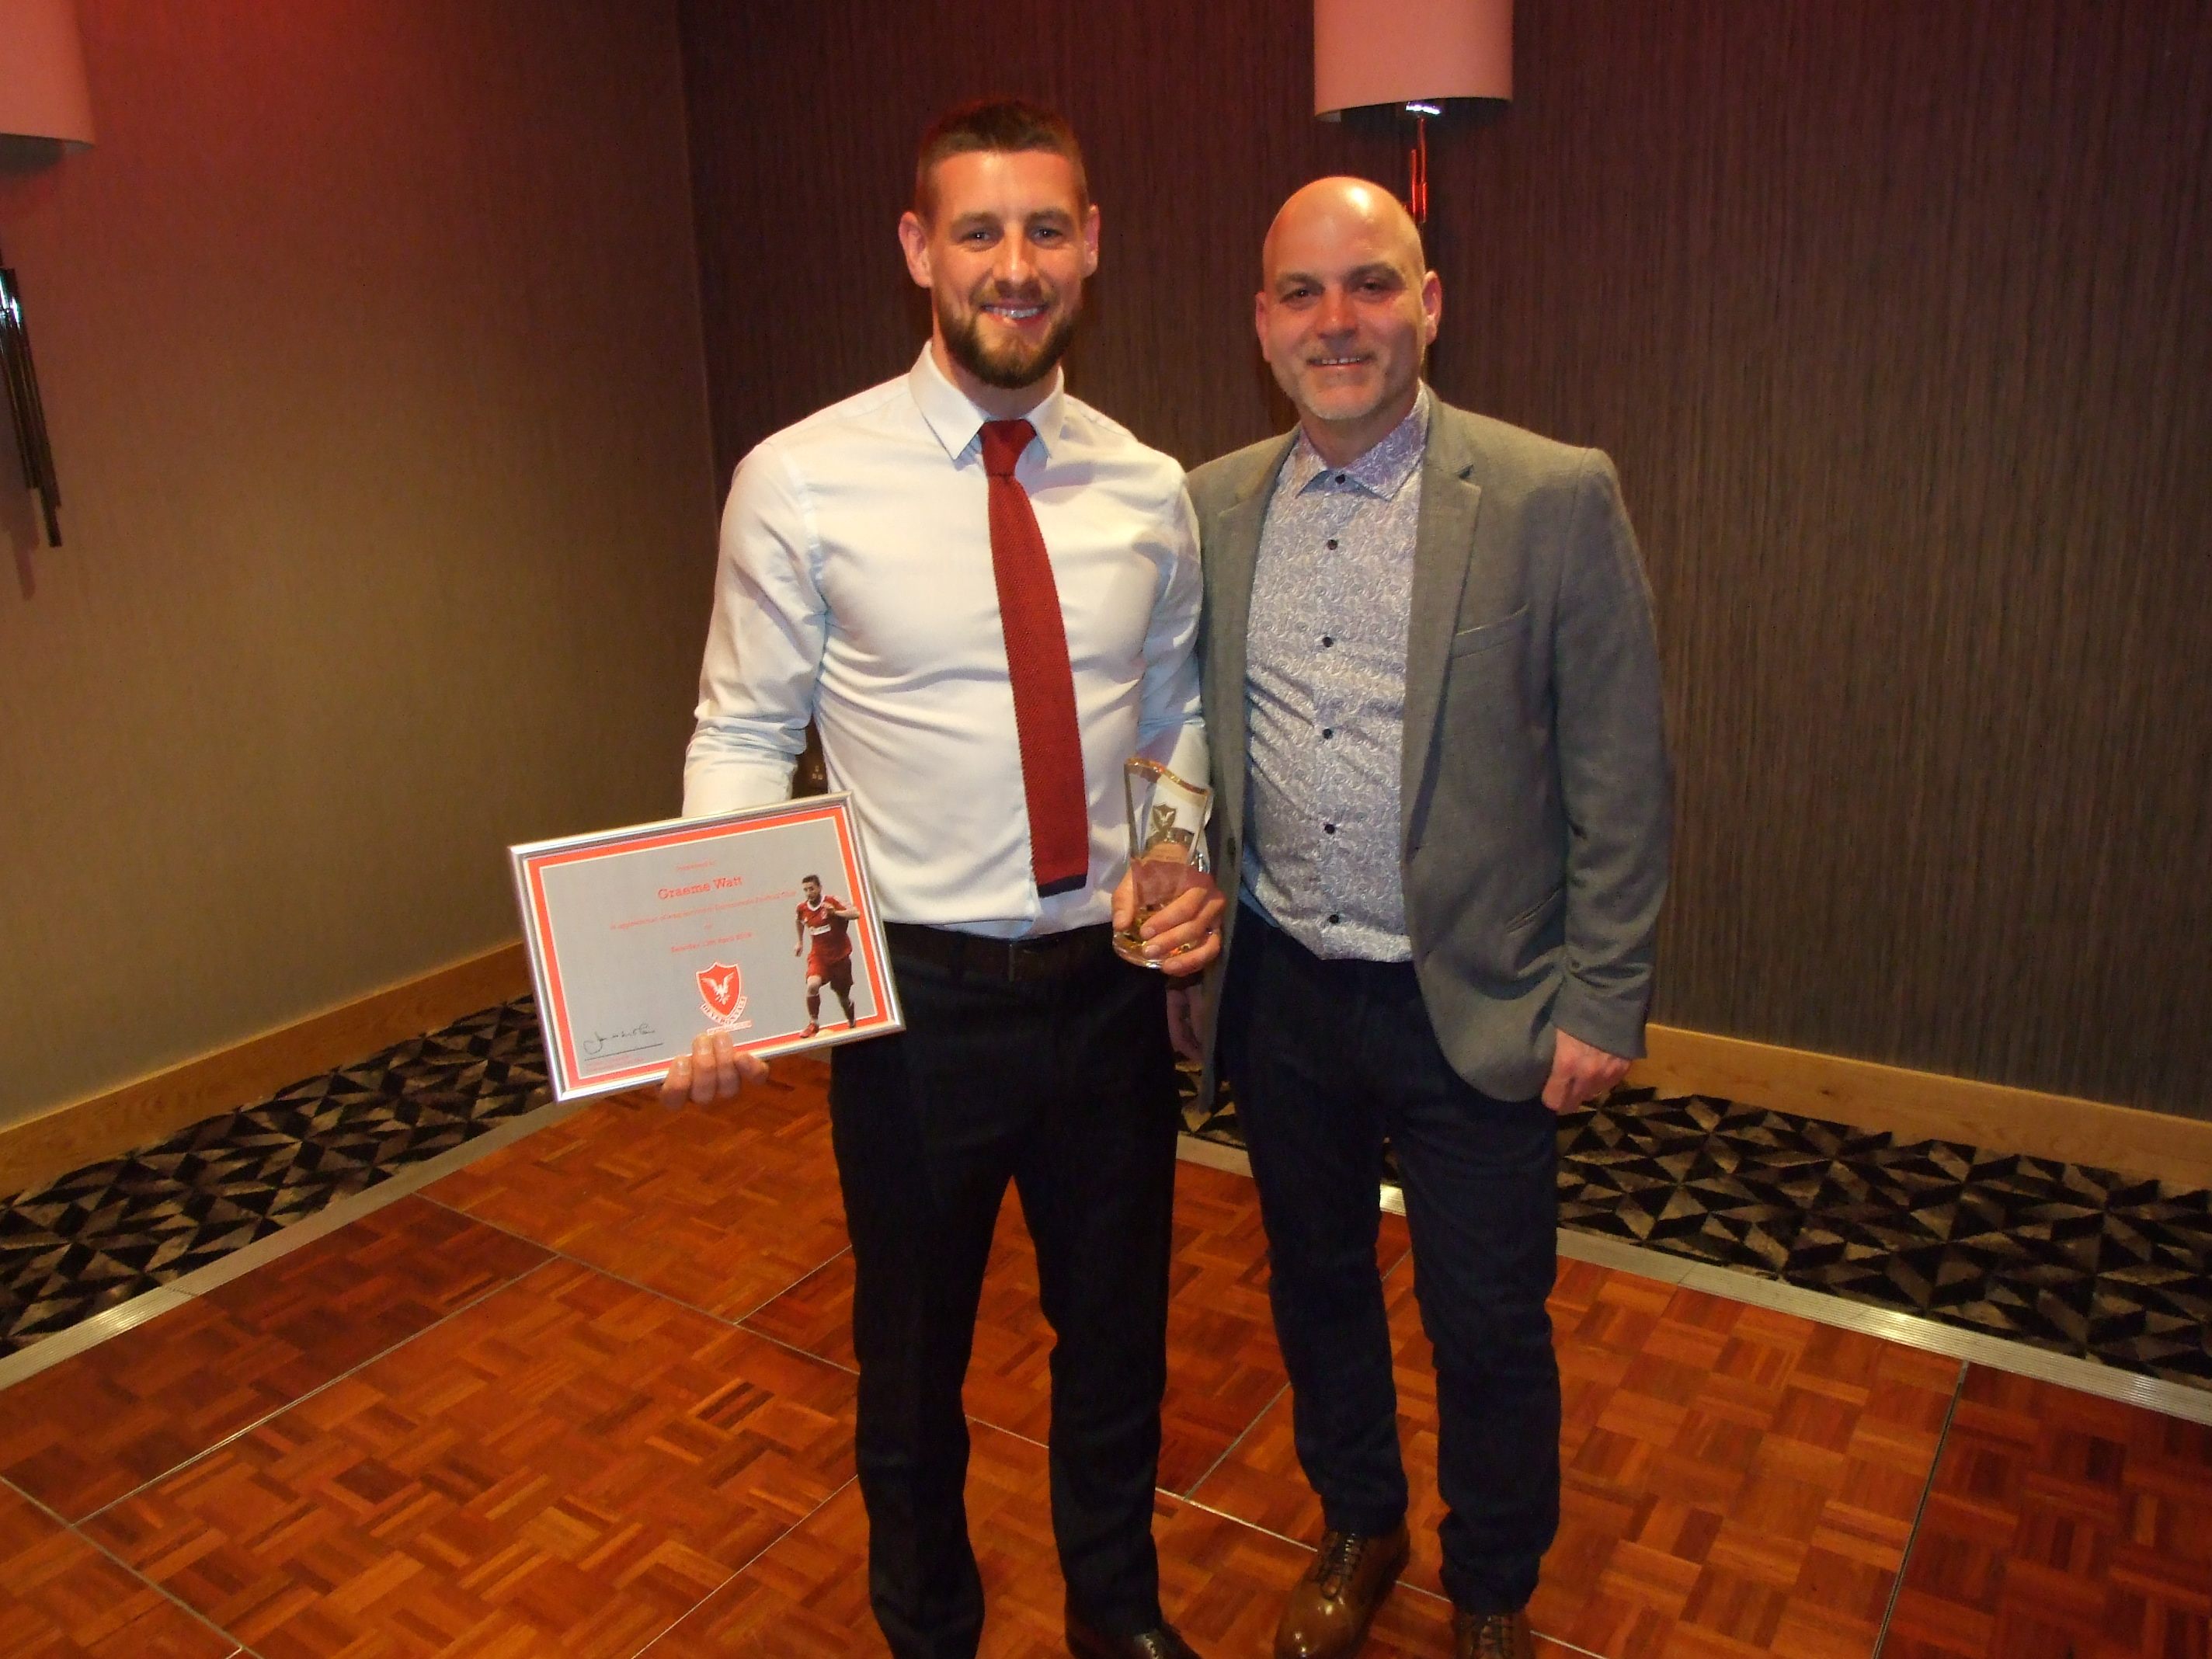 Graeme Watt - Special Recognition Award